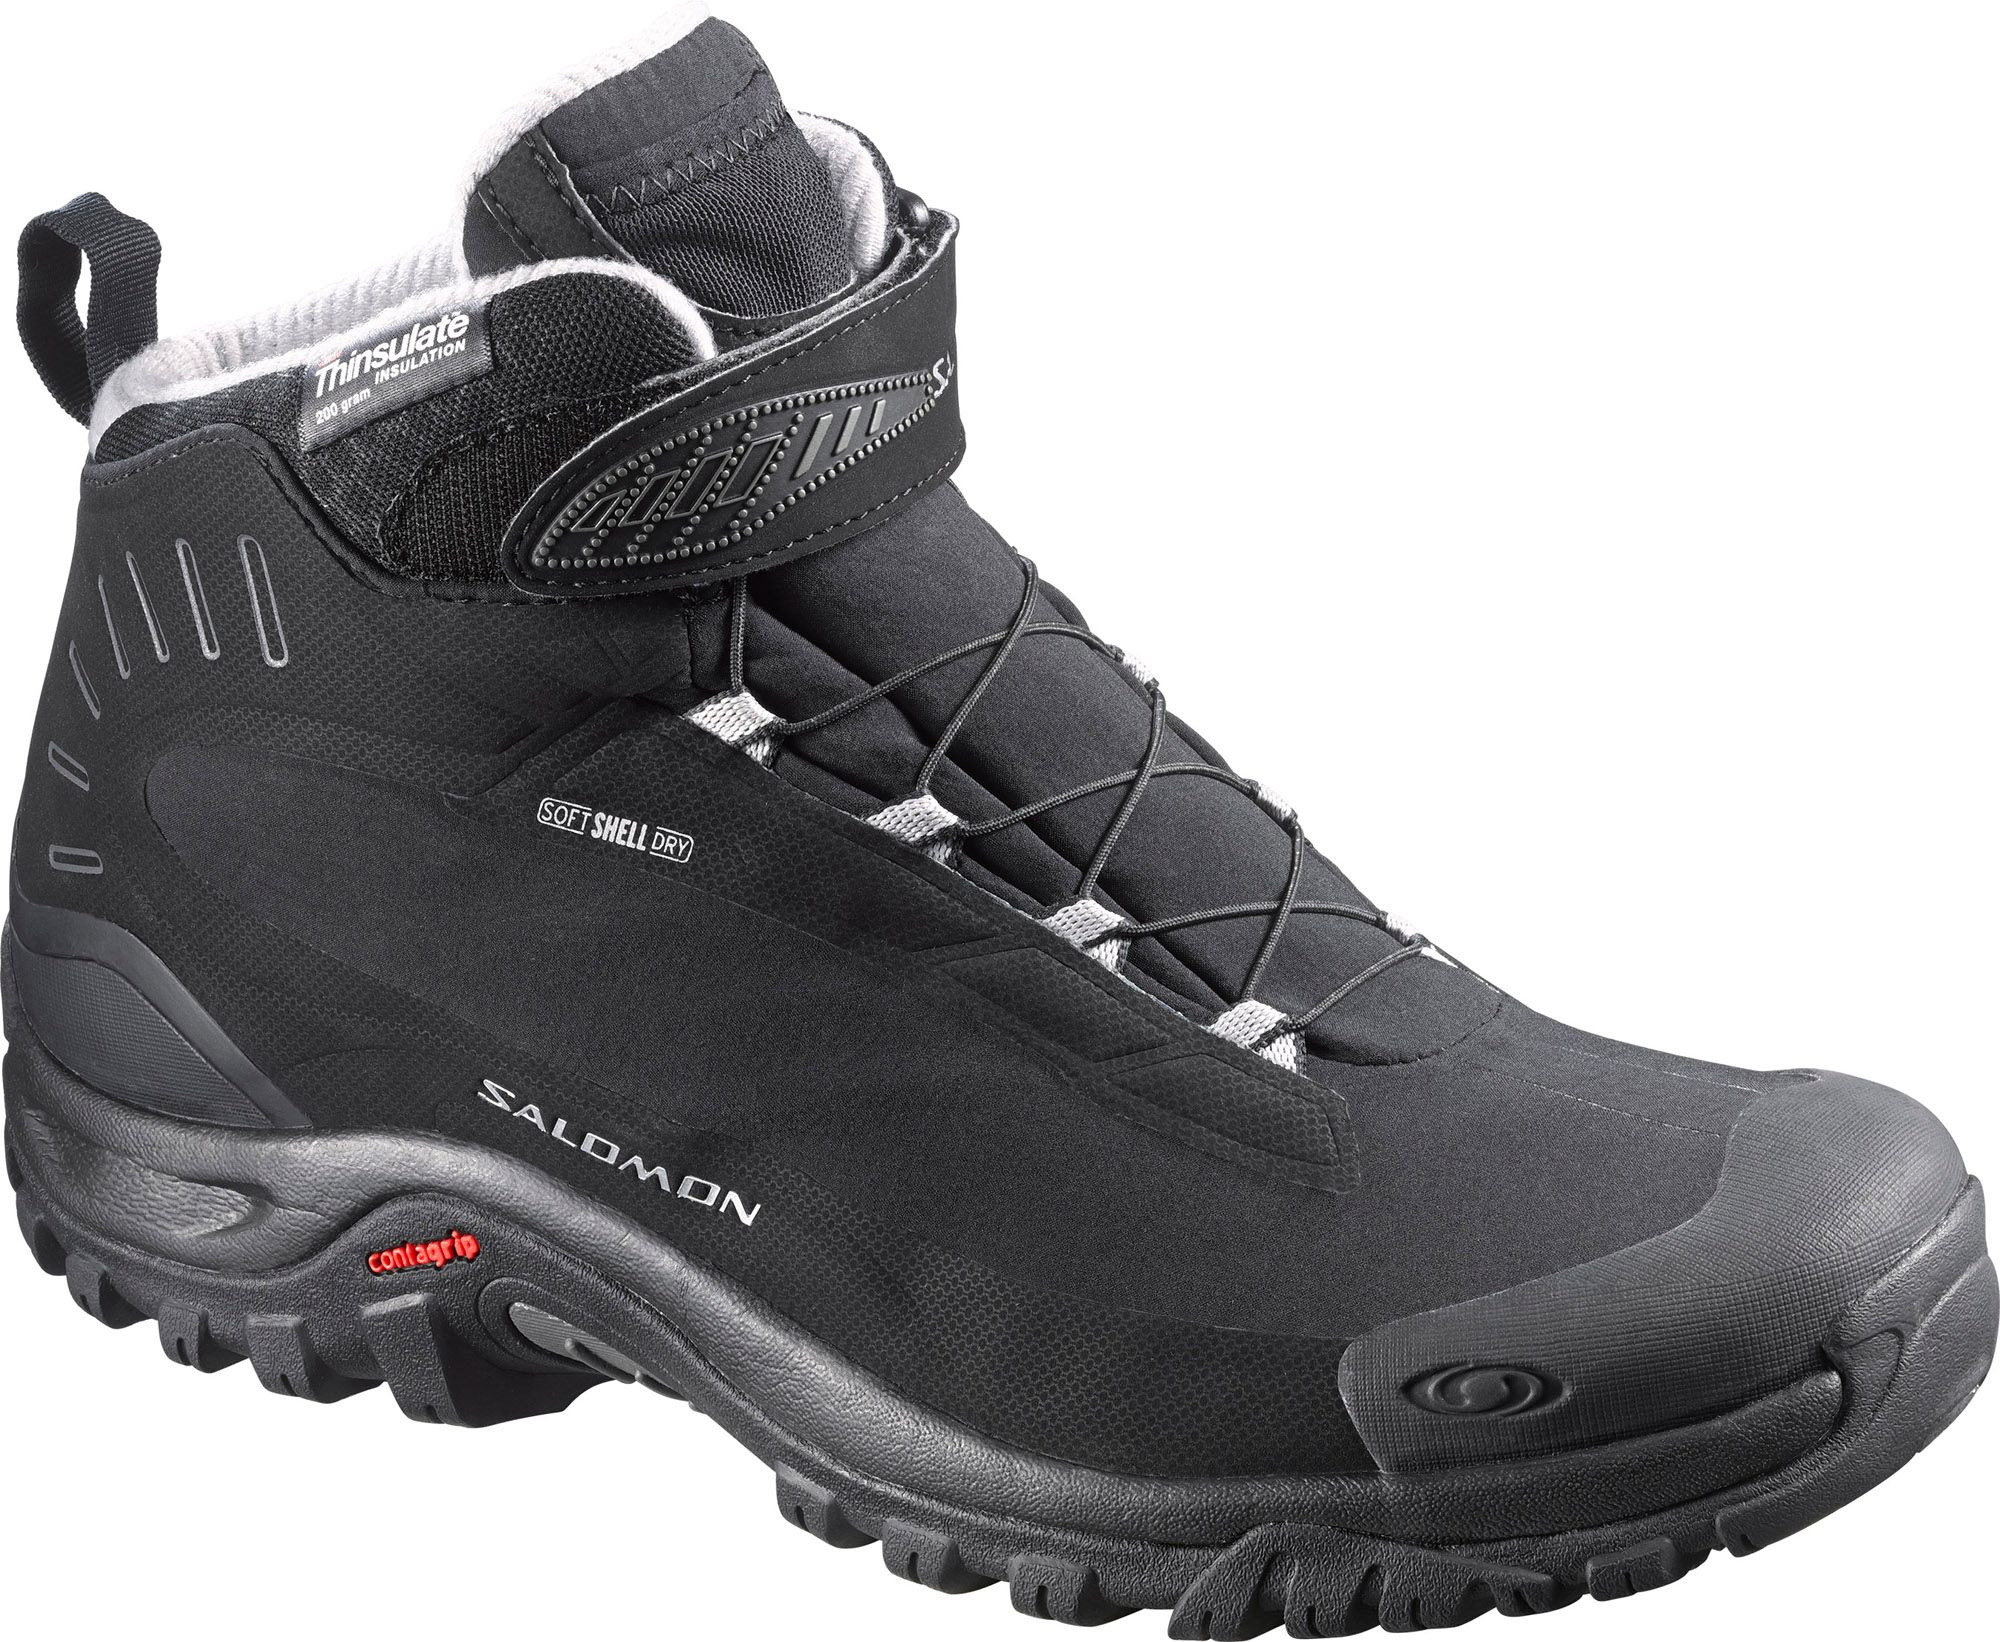 Men's Waterproof Boots | DICK'S Sporting Goods